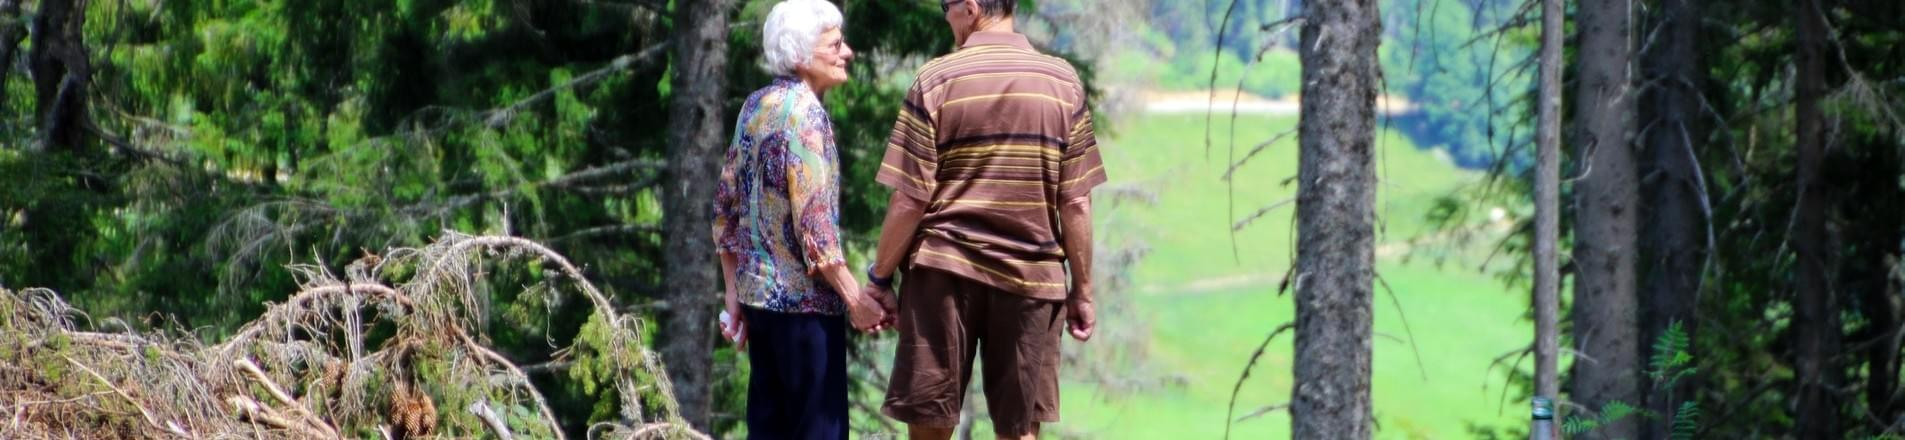 One million elderly go without seeing anyone for days